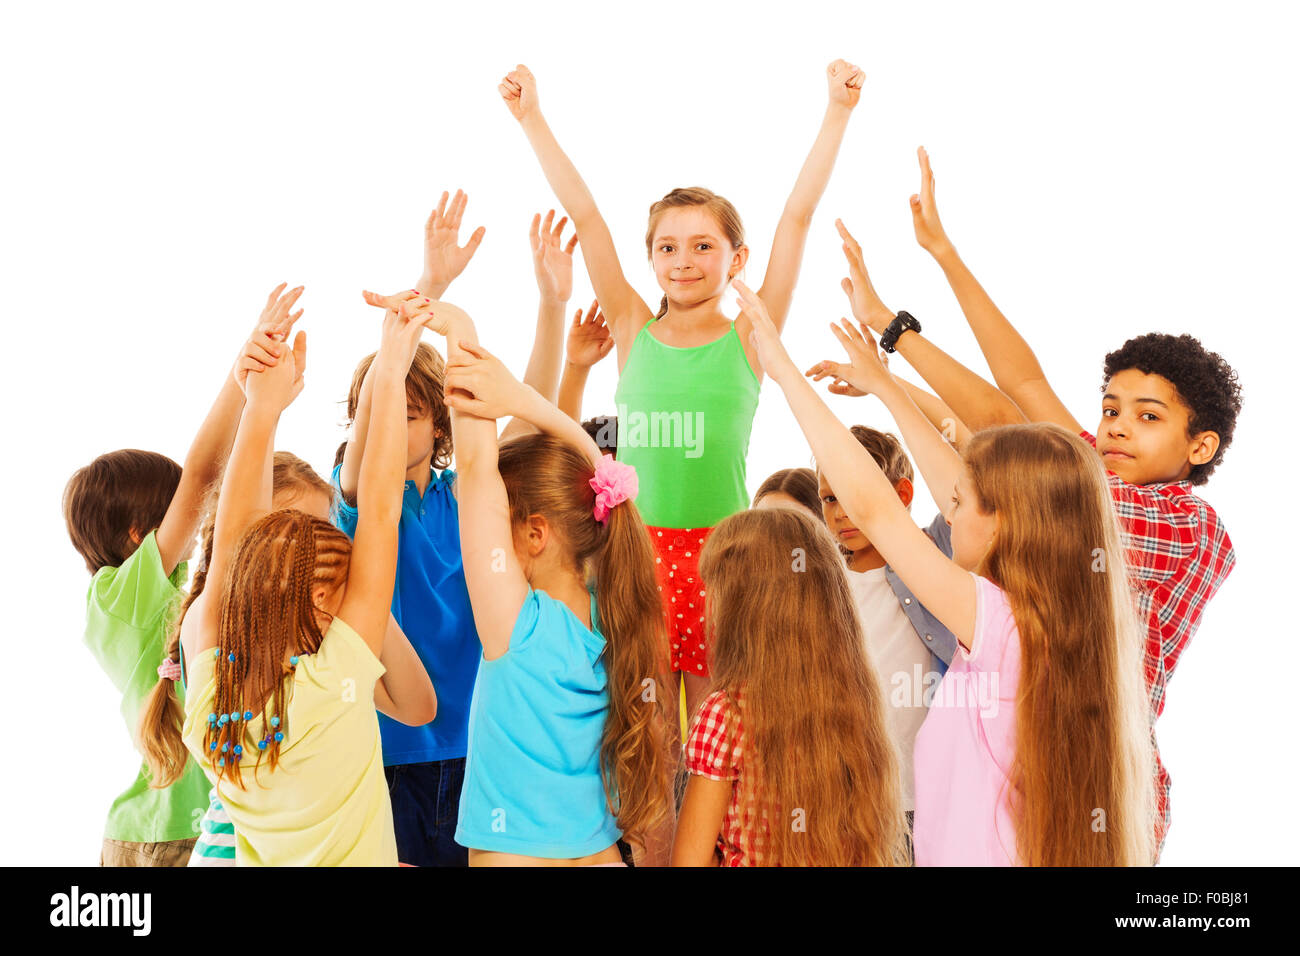 Happy girl with raised hands in group of kids - Stock Image